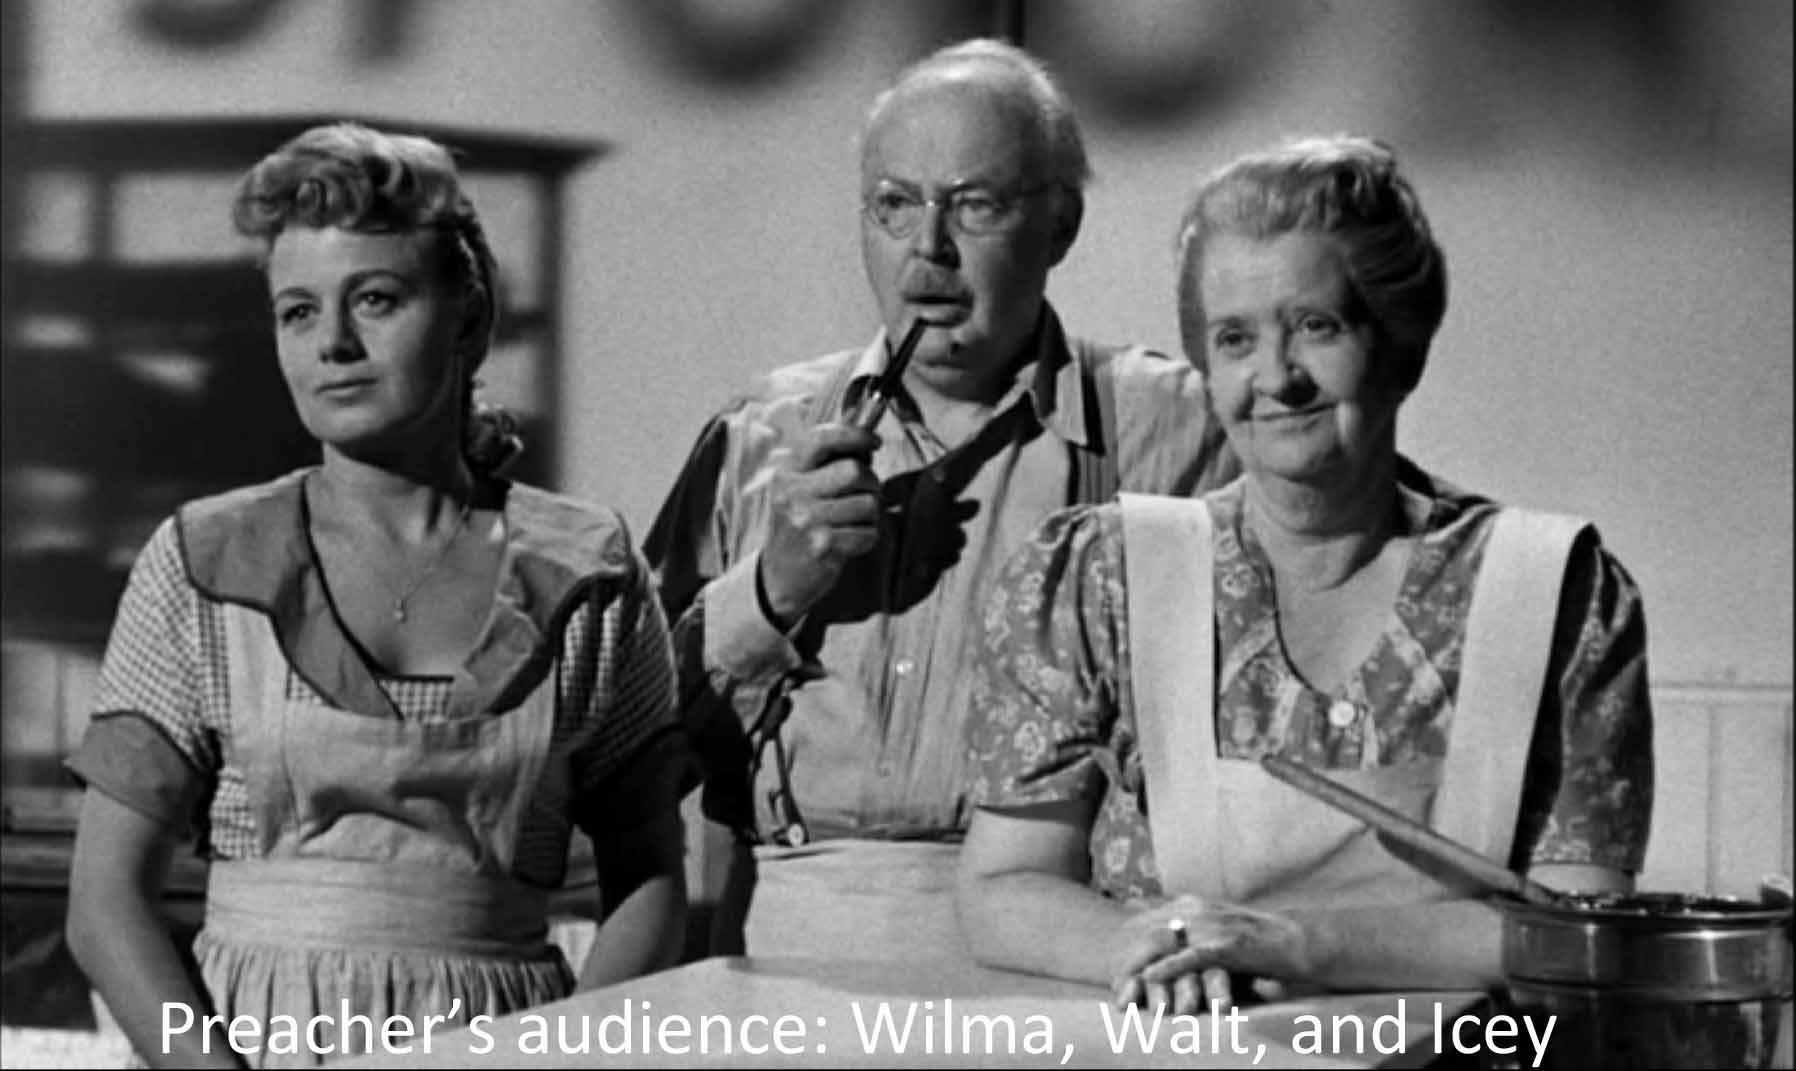 Preacher's audience: Wilma, Walt, and Icey